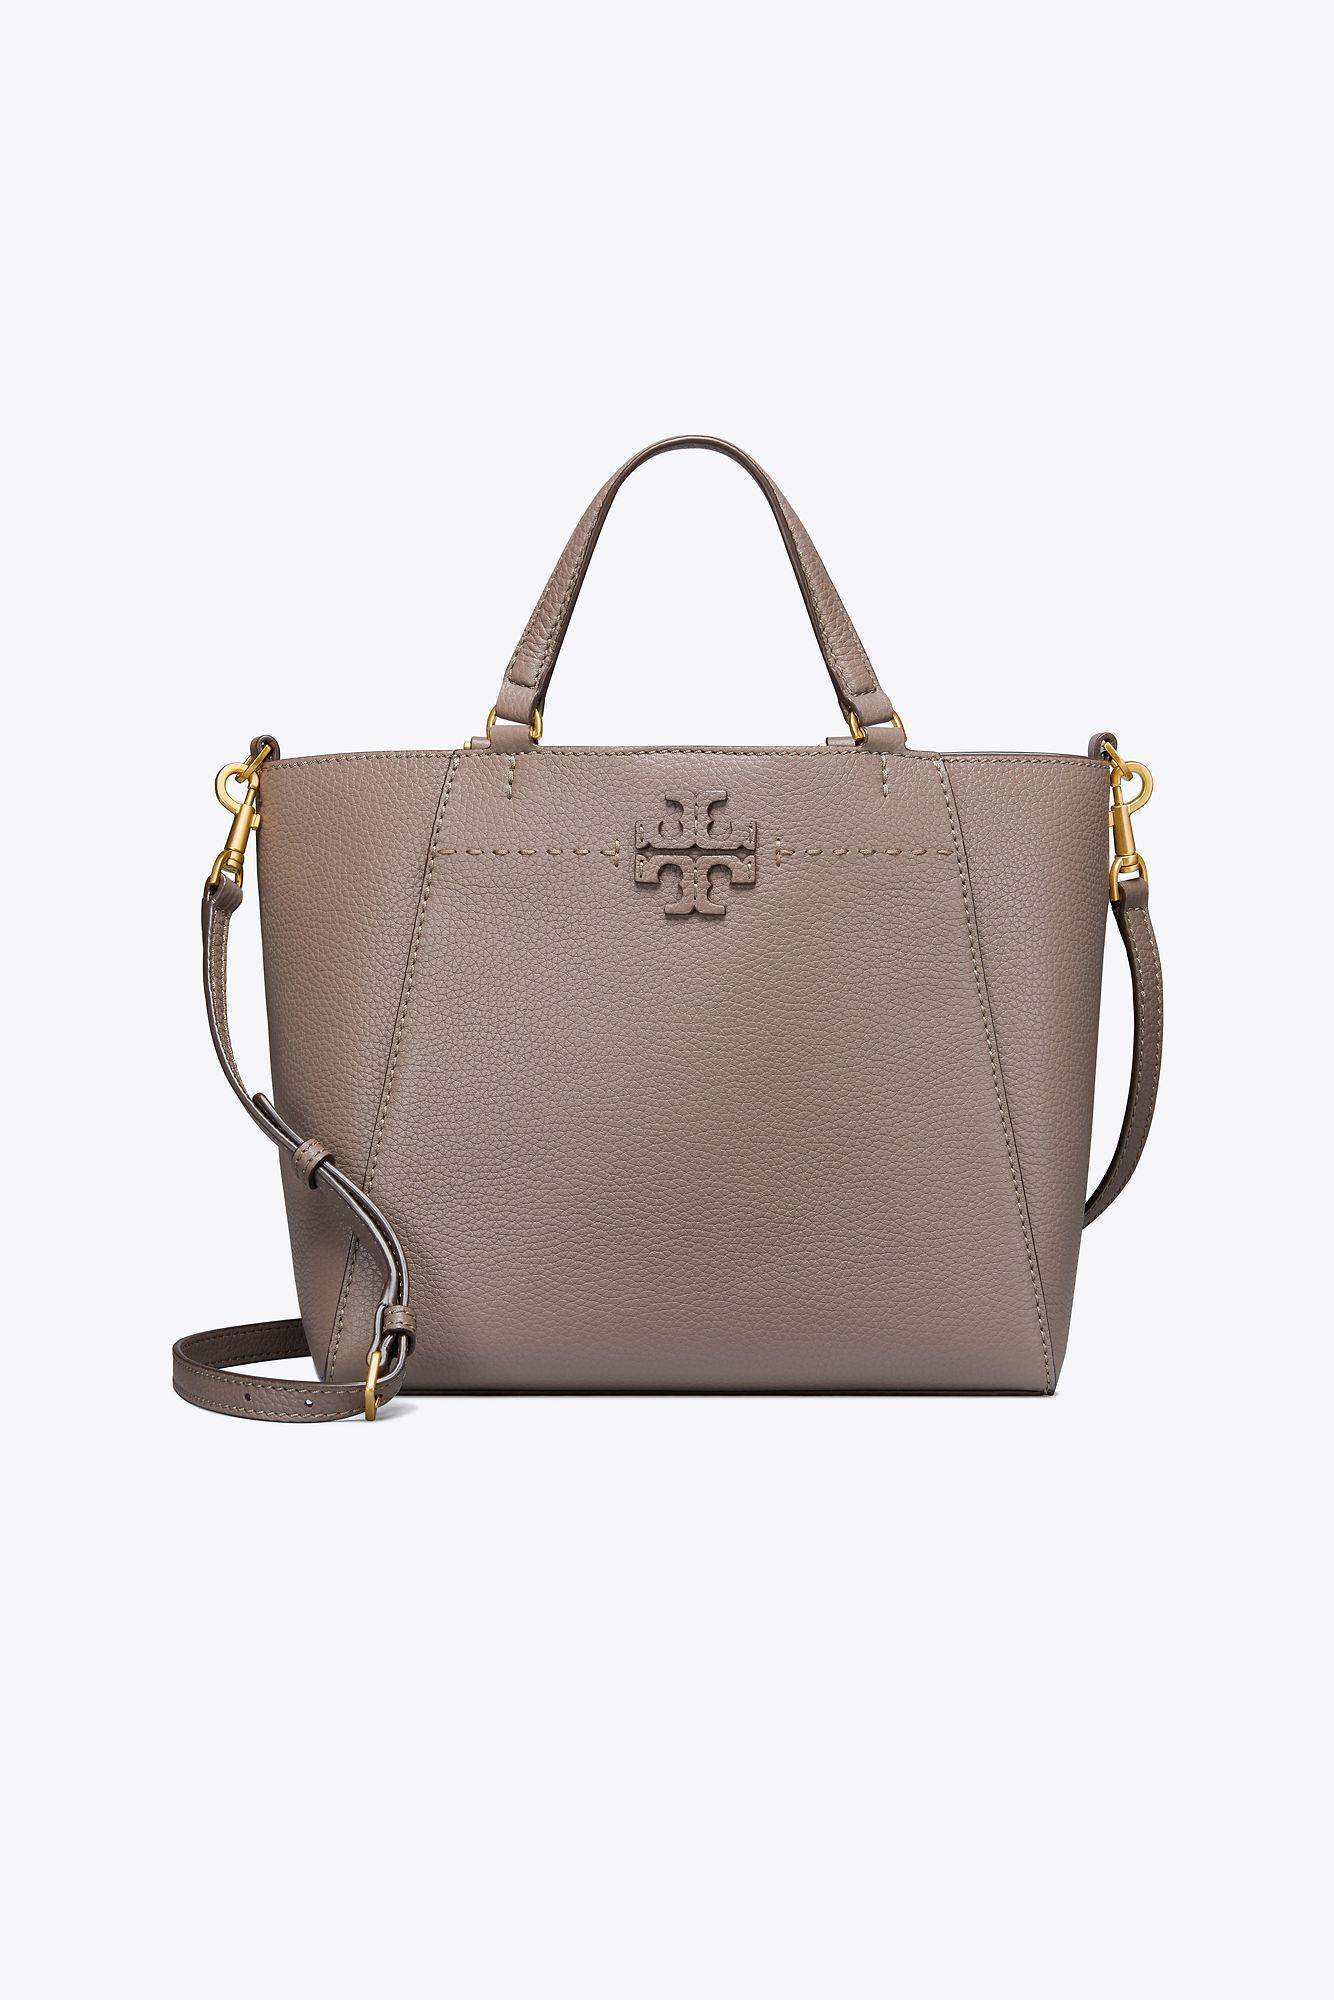 0ffac127e05 Tory Burch - Multicolor Mcgraw Small Carryall - Lyst. View fullscreen